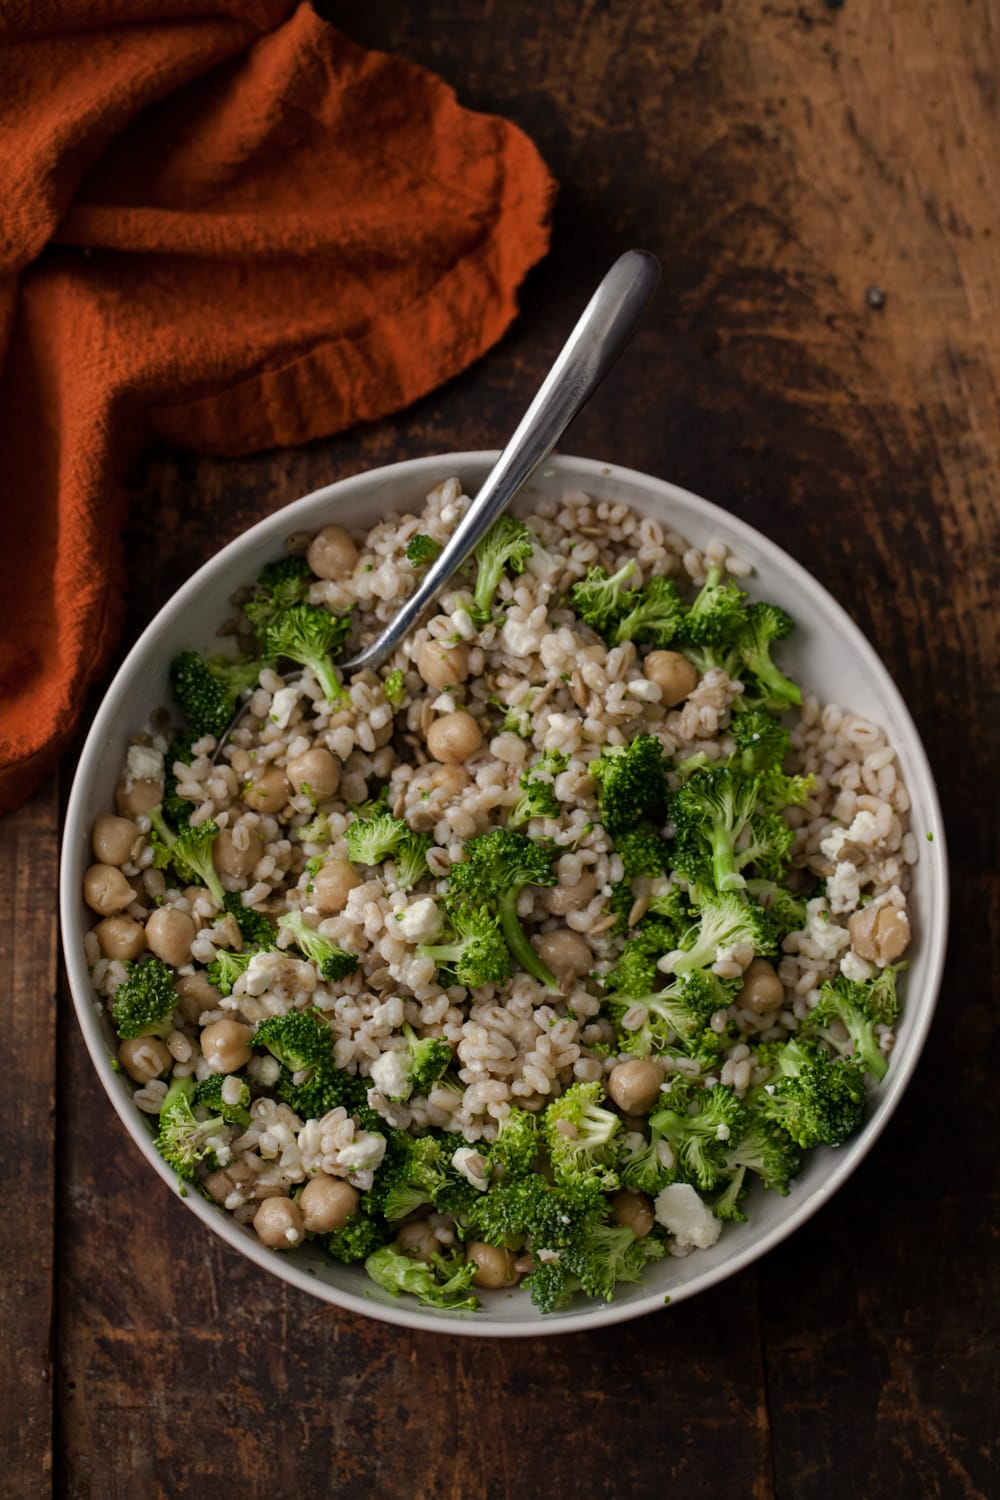 Broccoli Barley Bowl